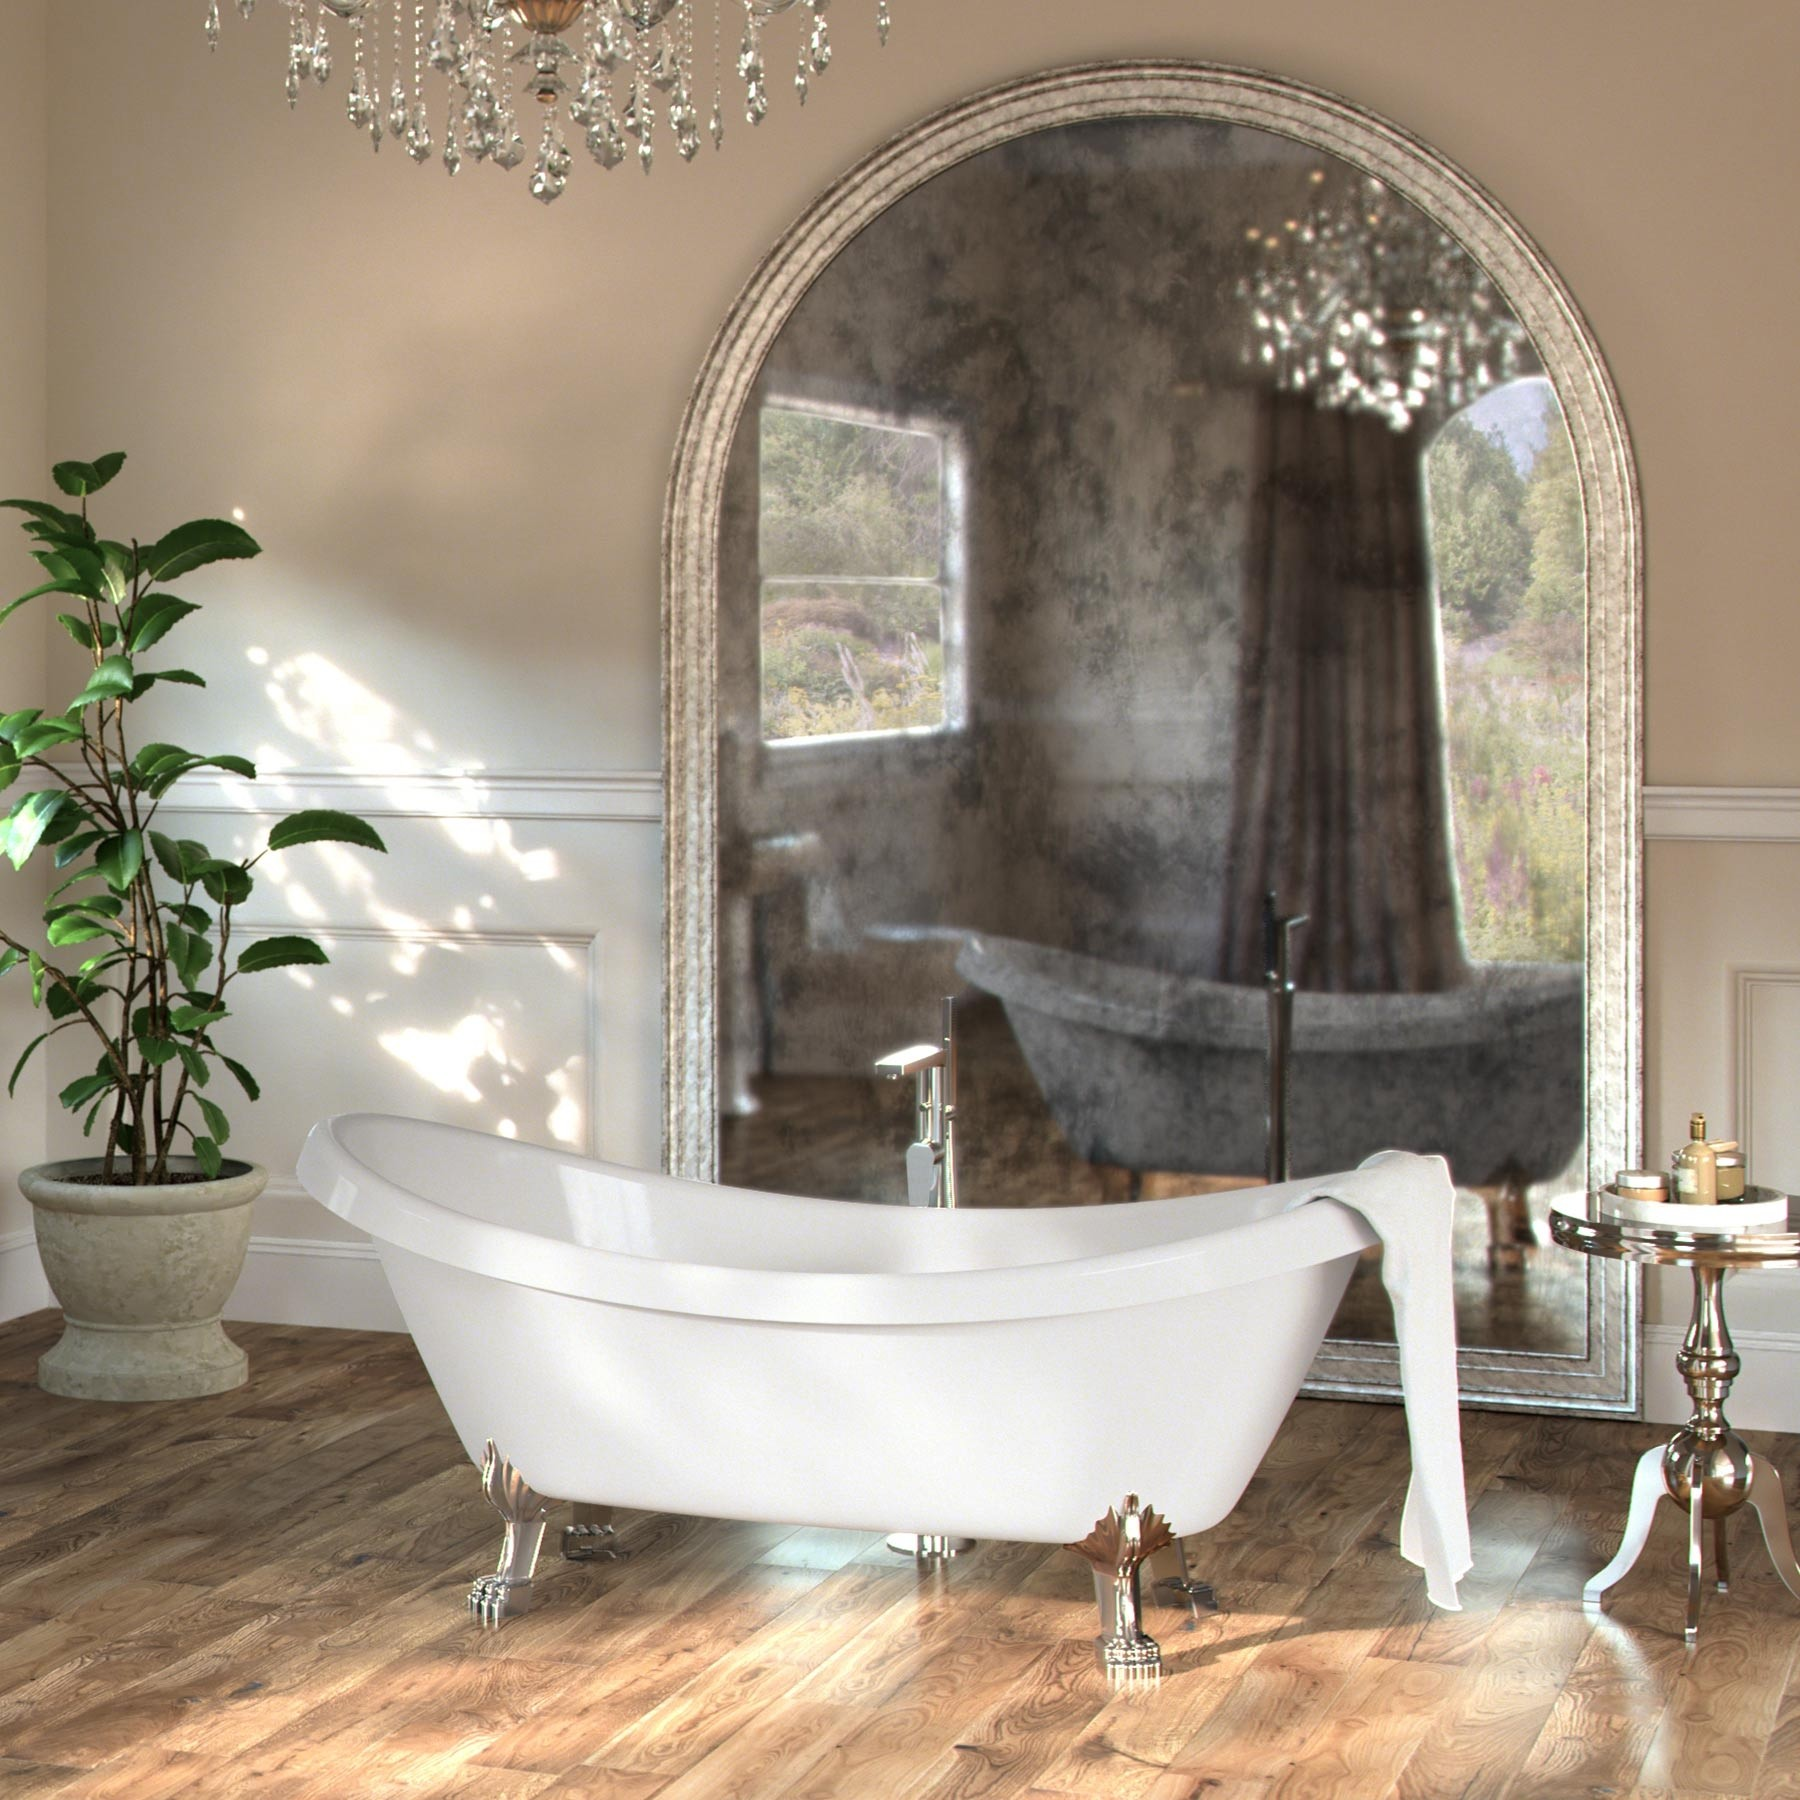 copper best acrylic bathroom slipper decor mosaic tub double plus remodel constantine tubs ideas inspiring with